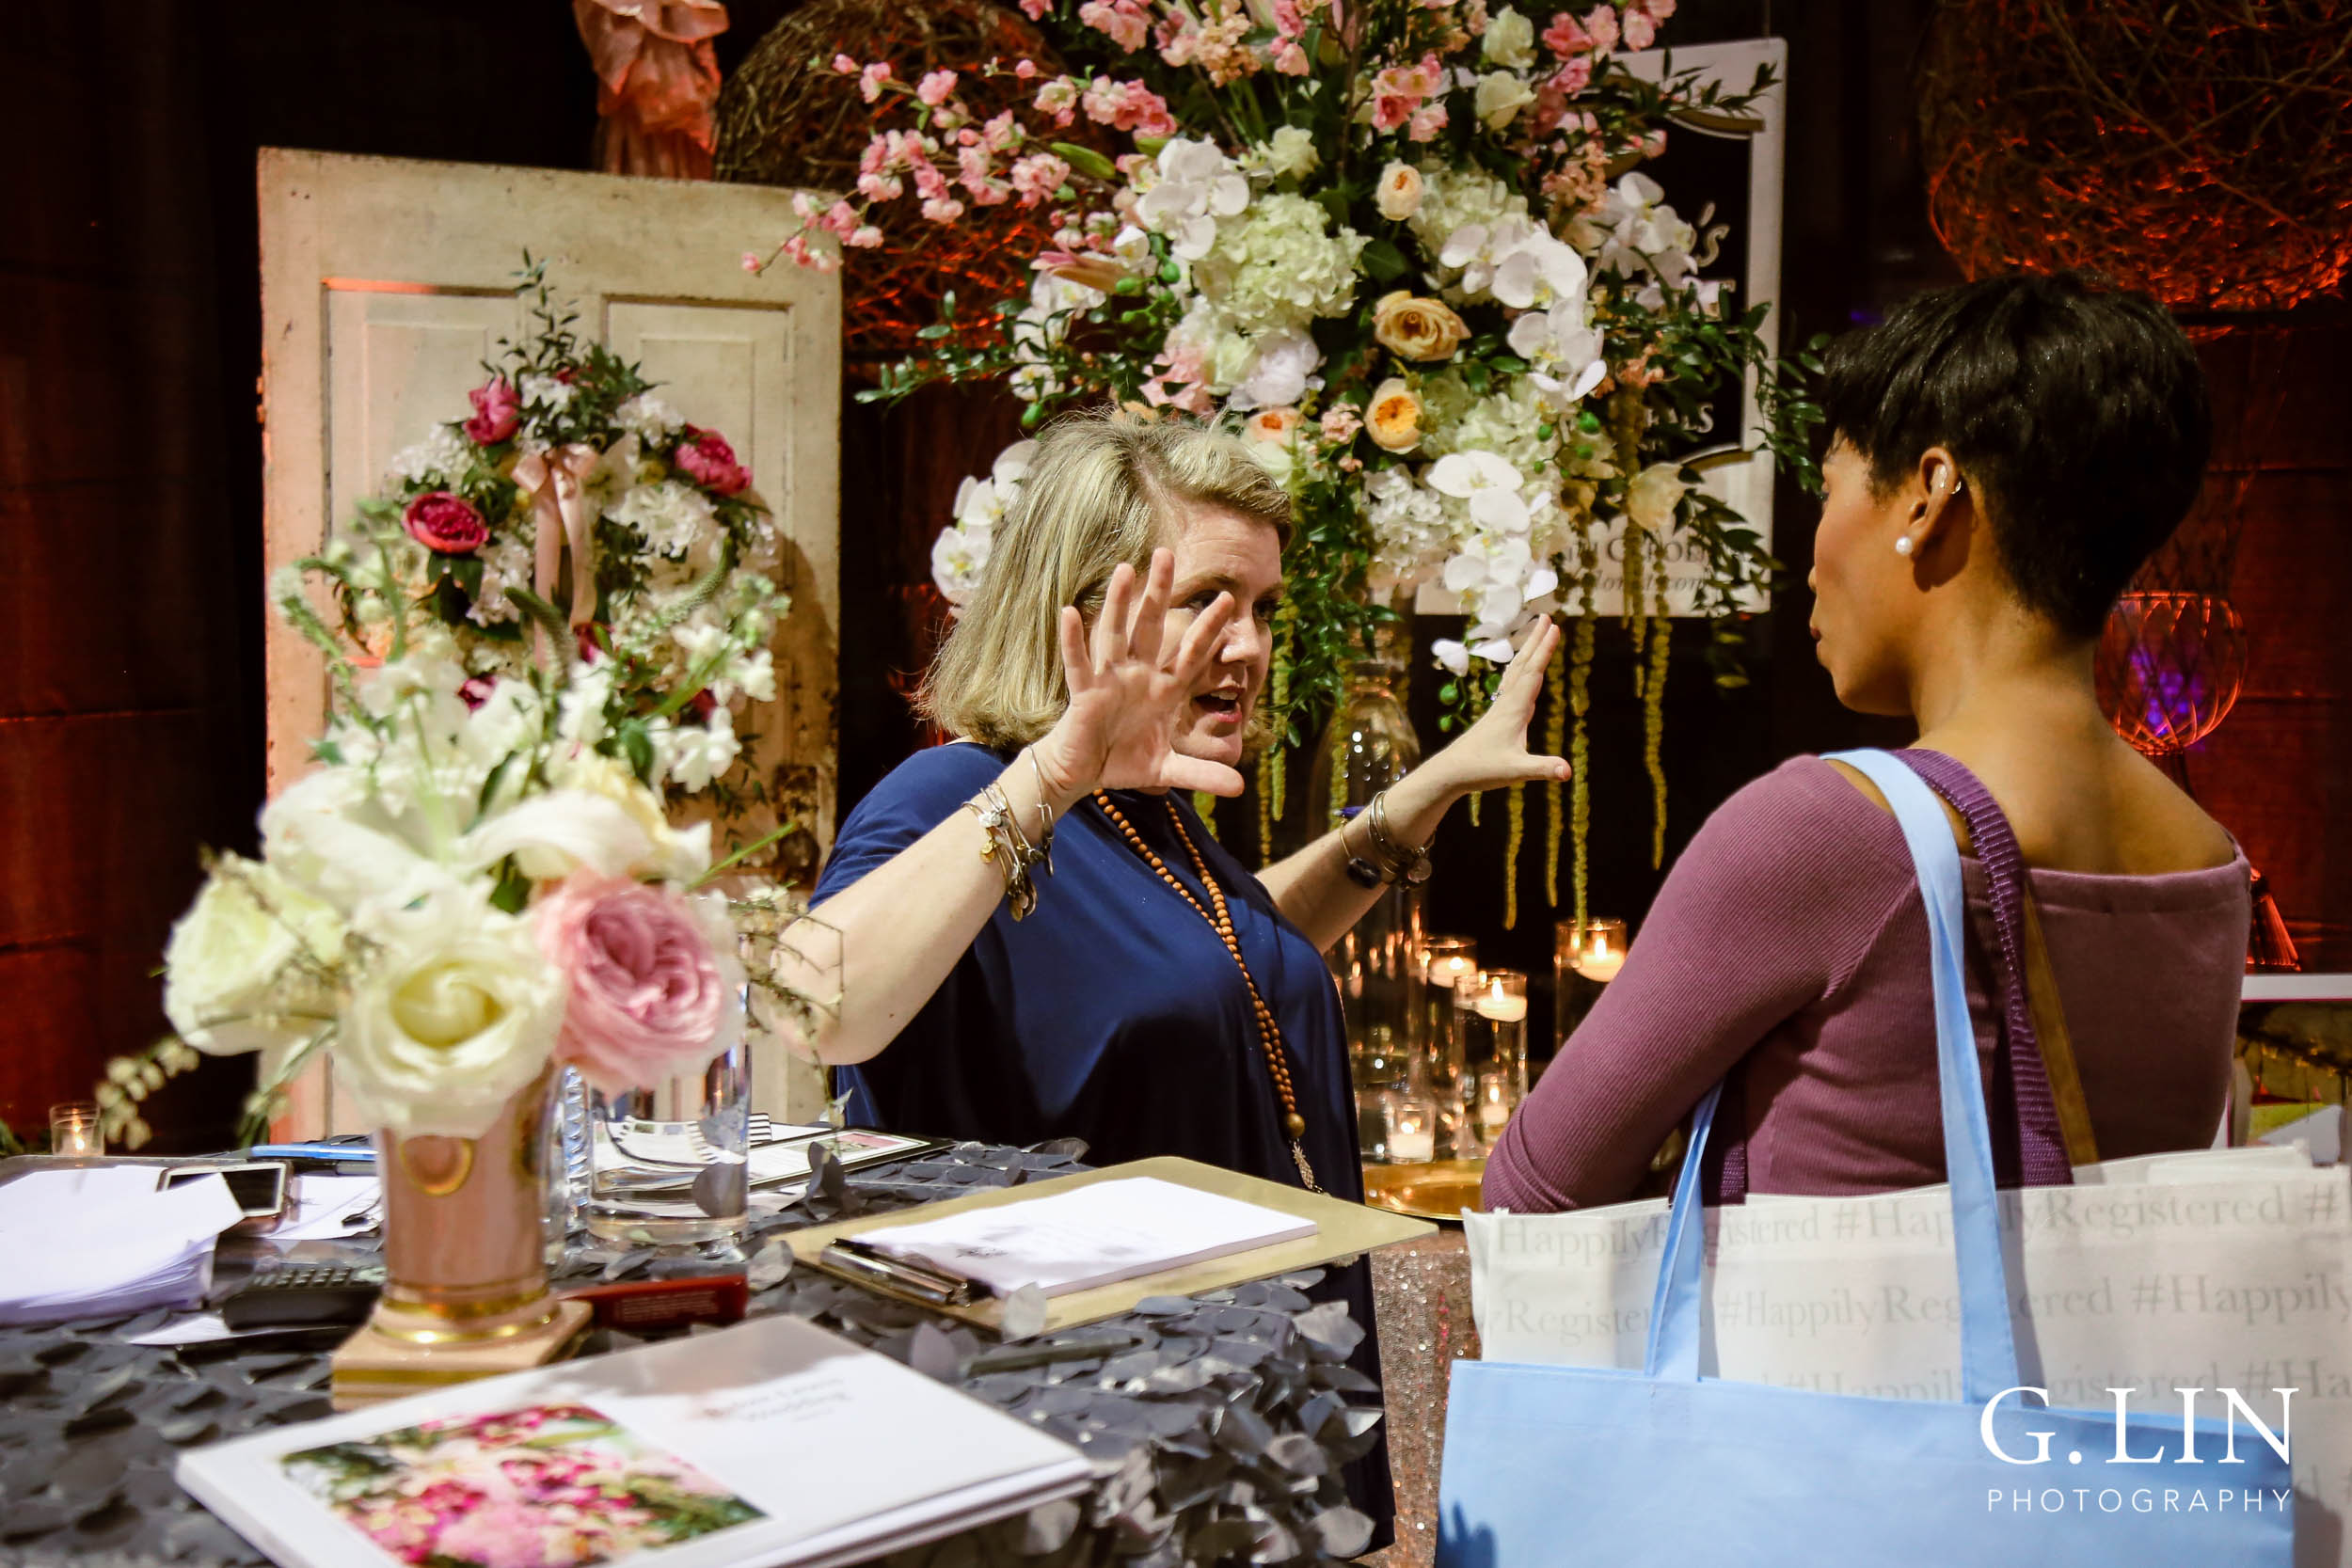 Raleigh Event Photographer | G. Lin Photography | Woman and bride talking to each other at booth